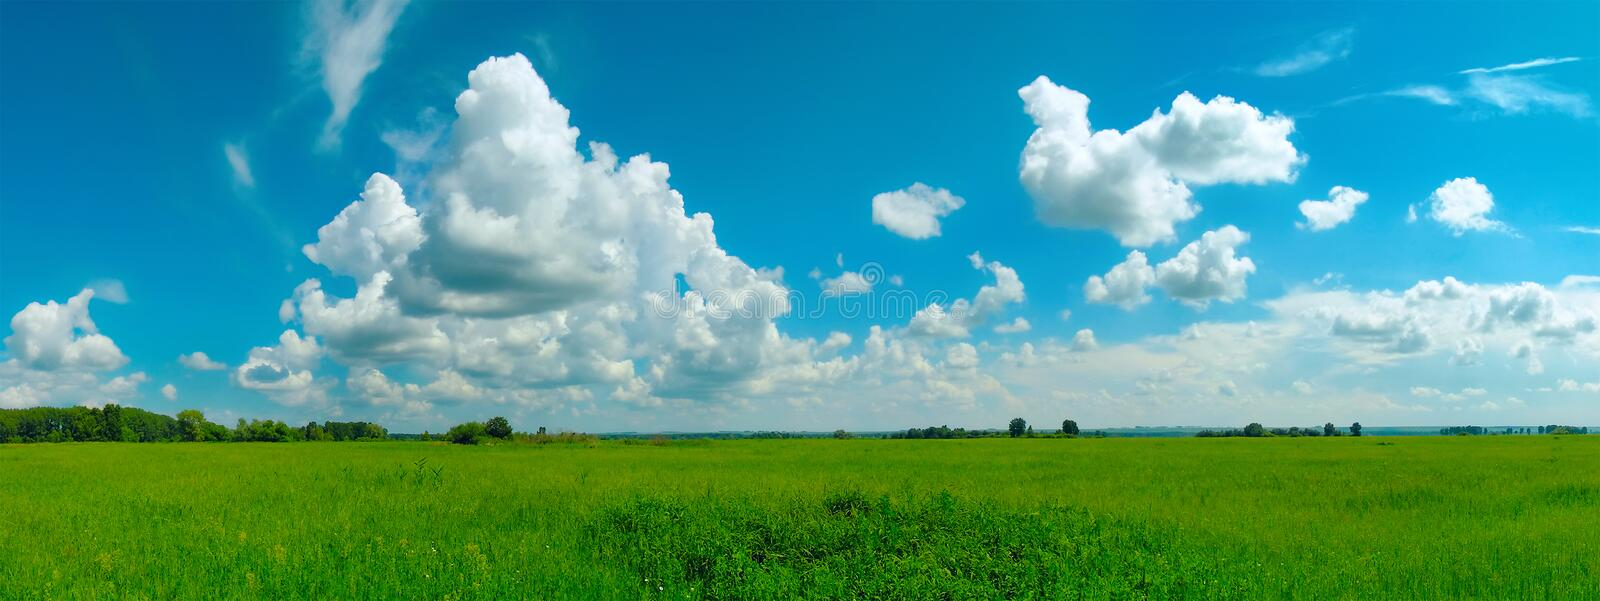 Romantic summer landscape royalty free stock images